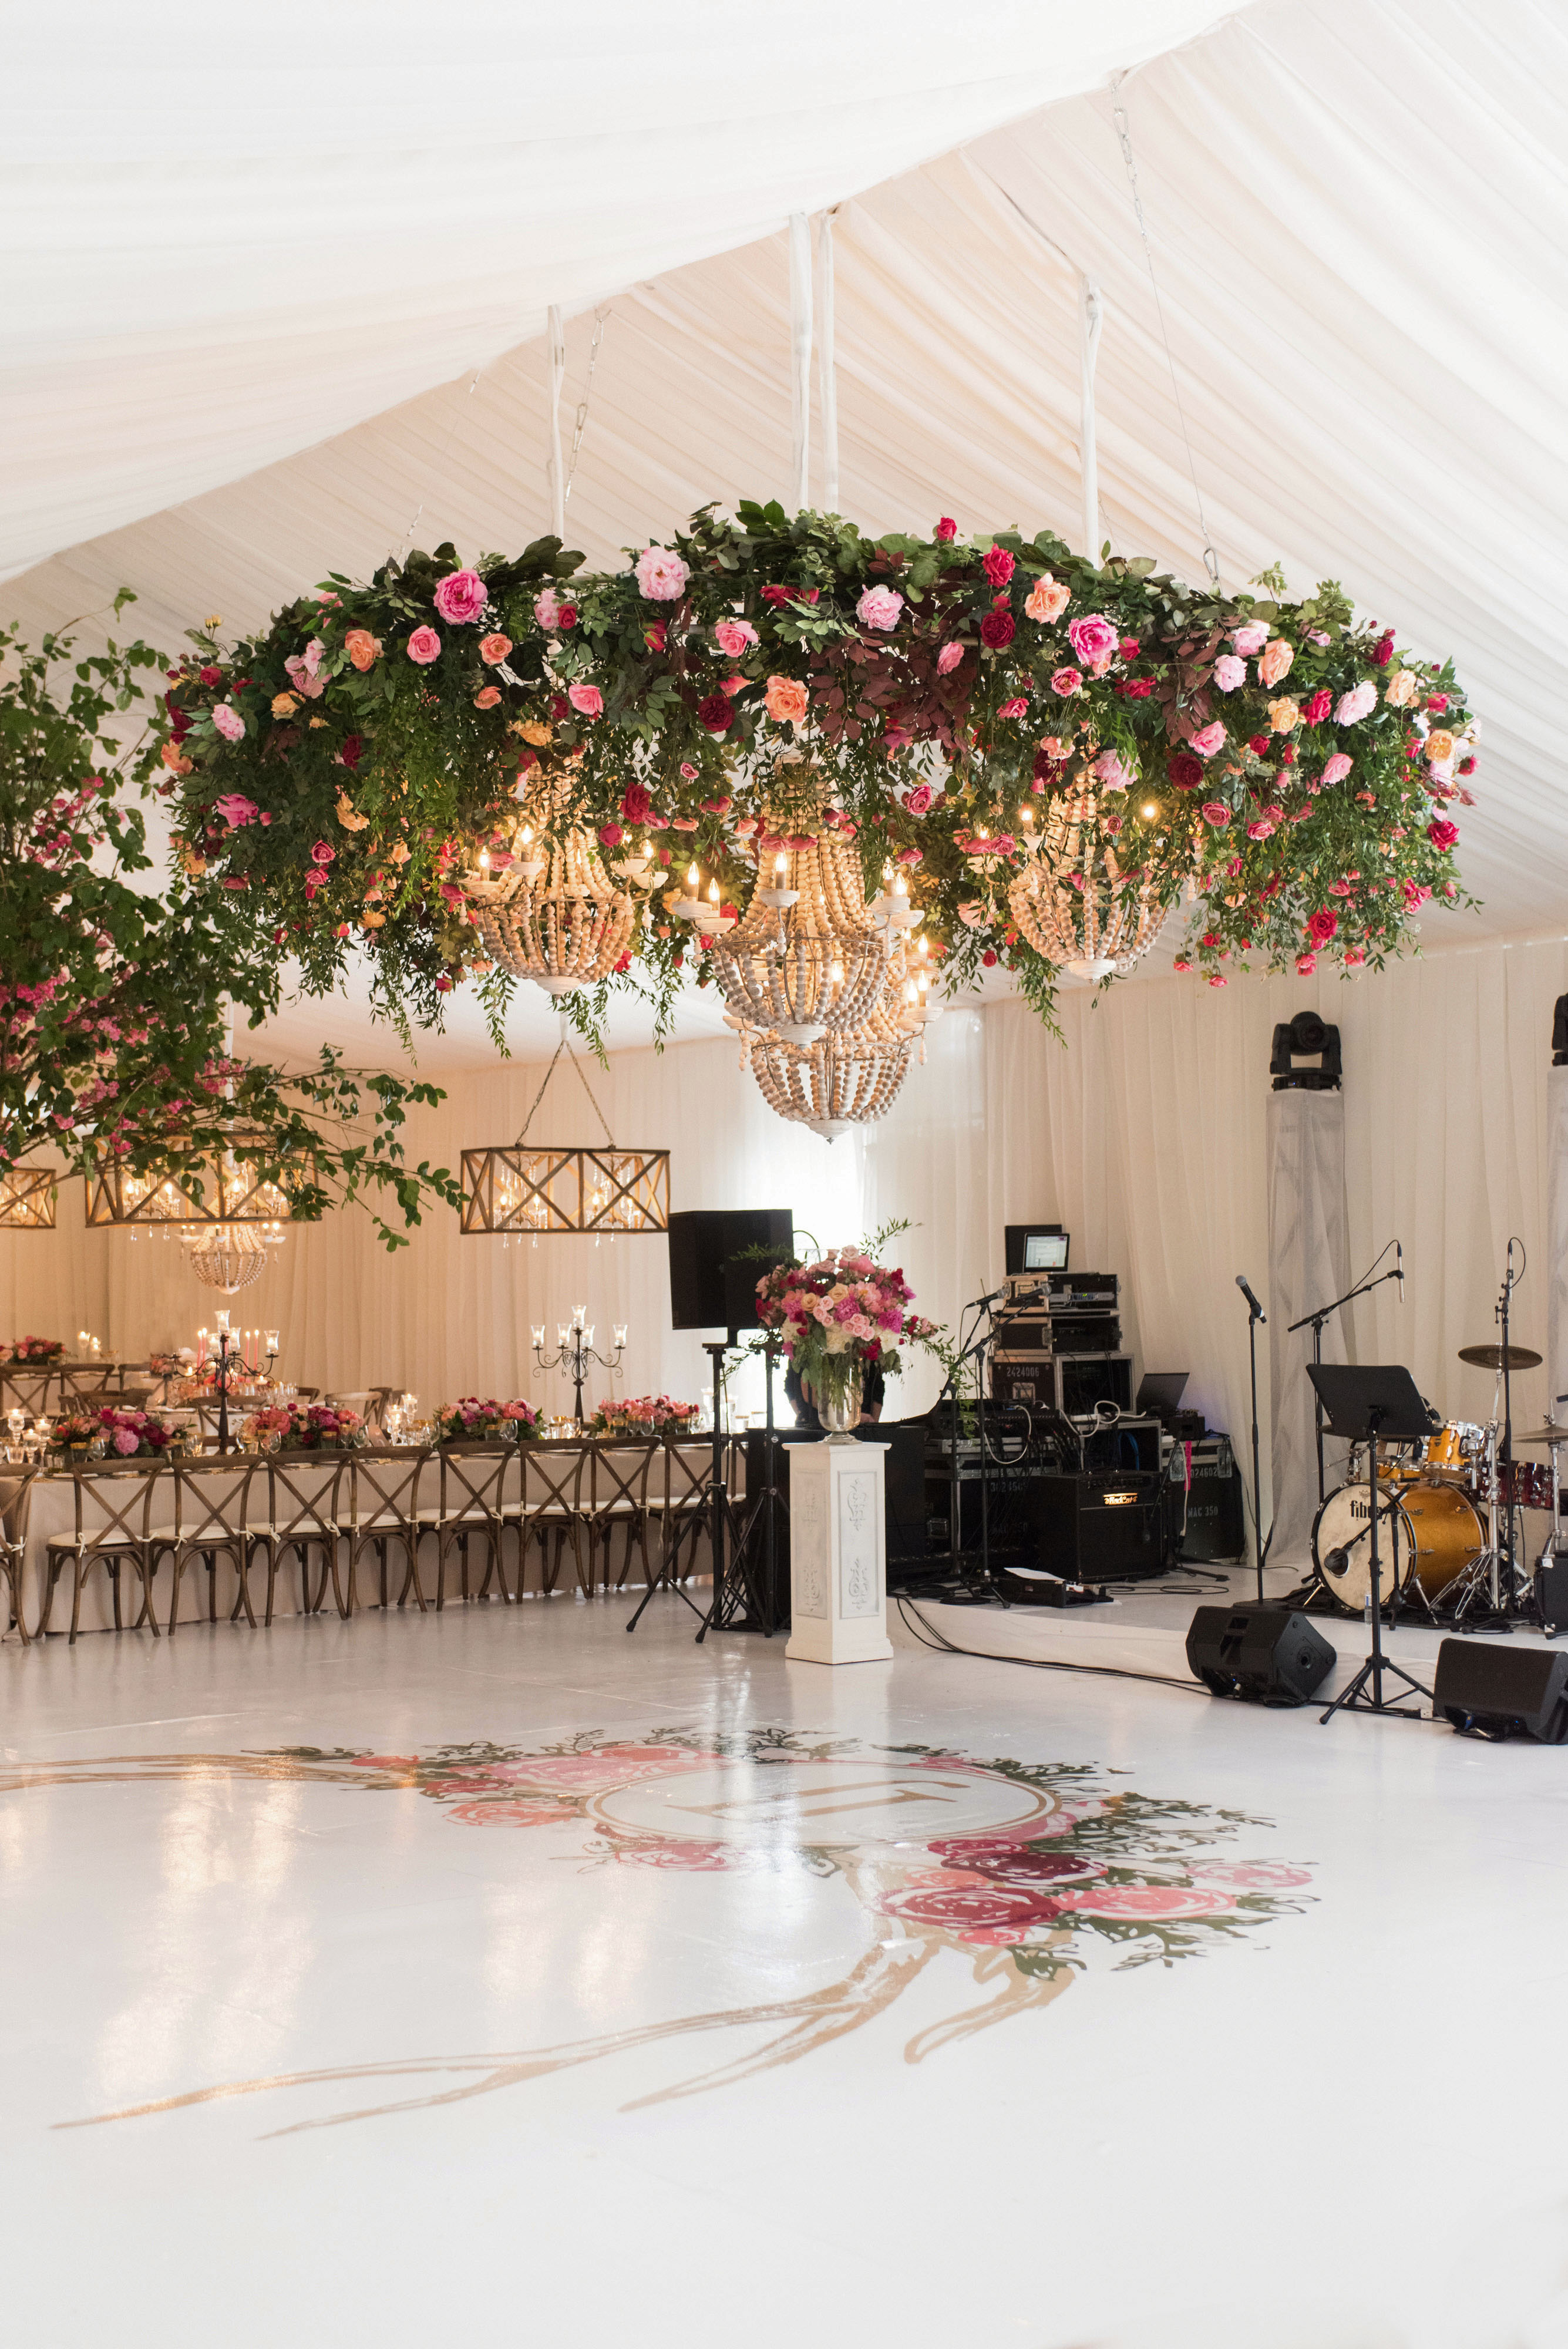 76 Wedding Decorations & Decor Ideas